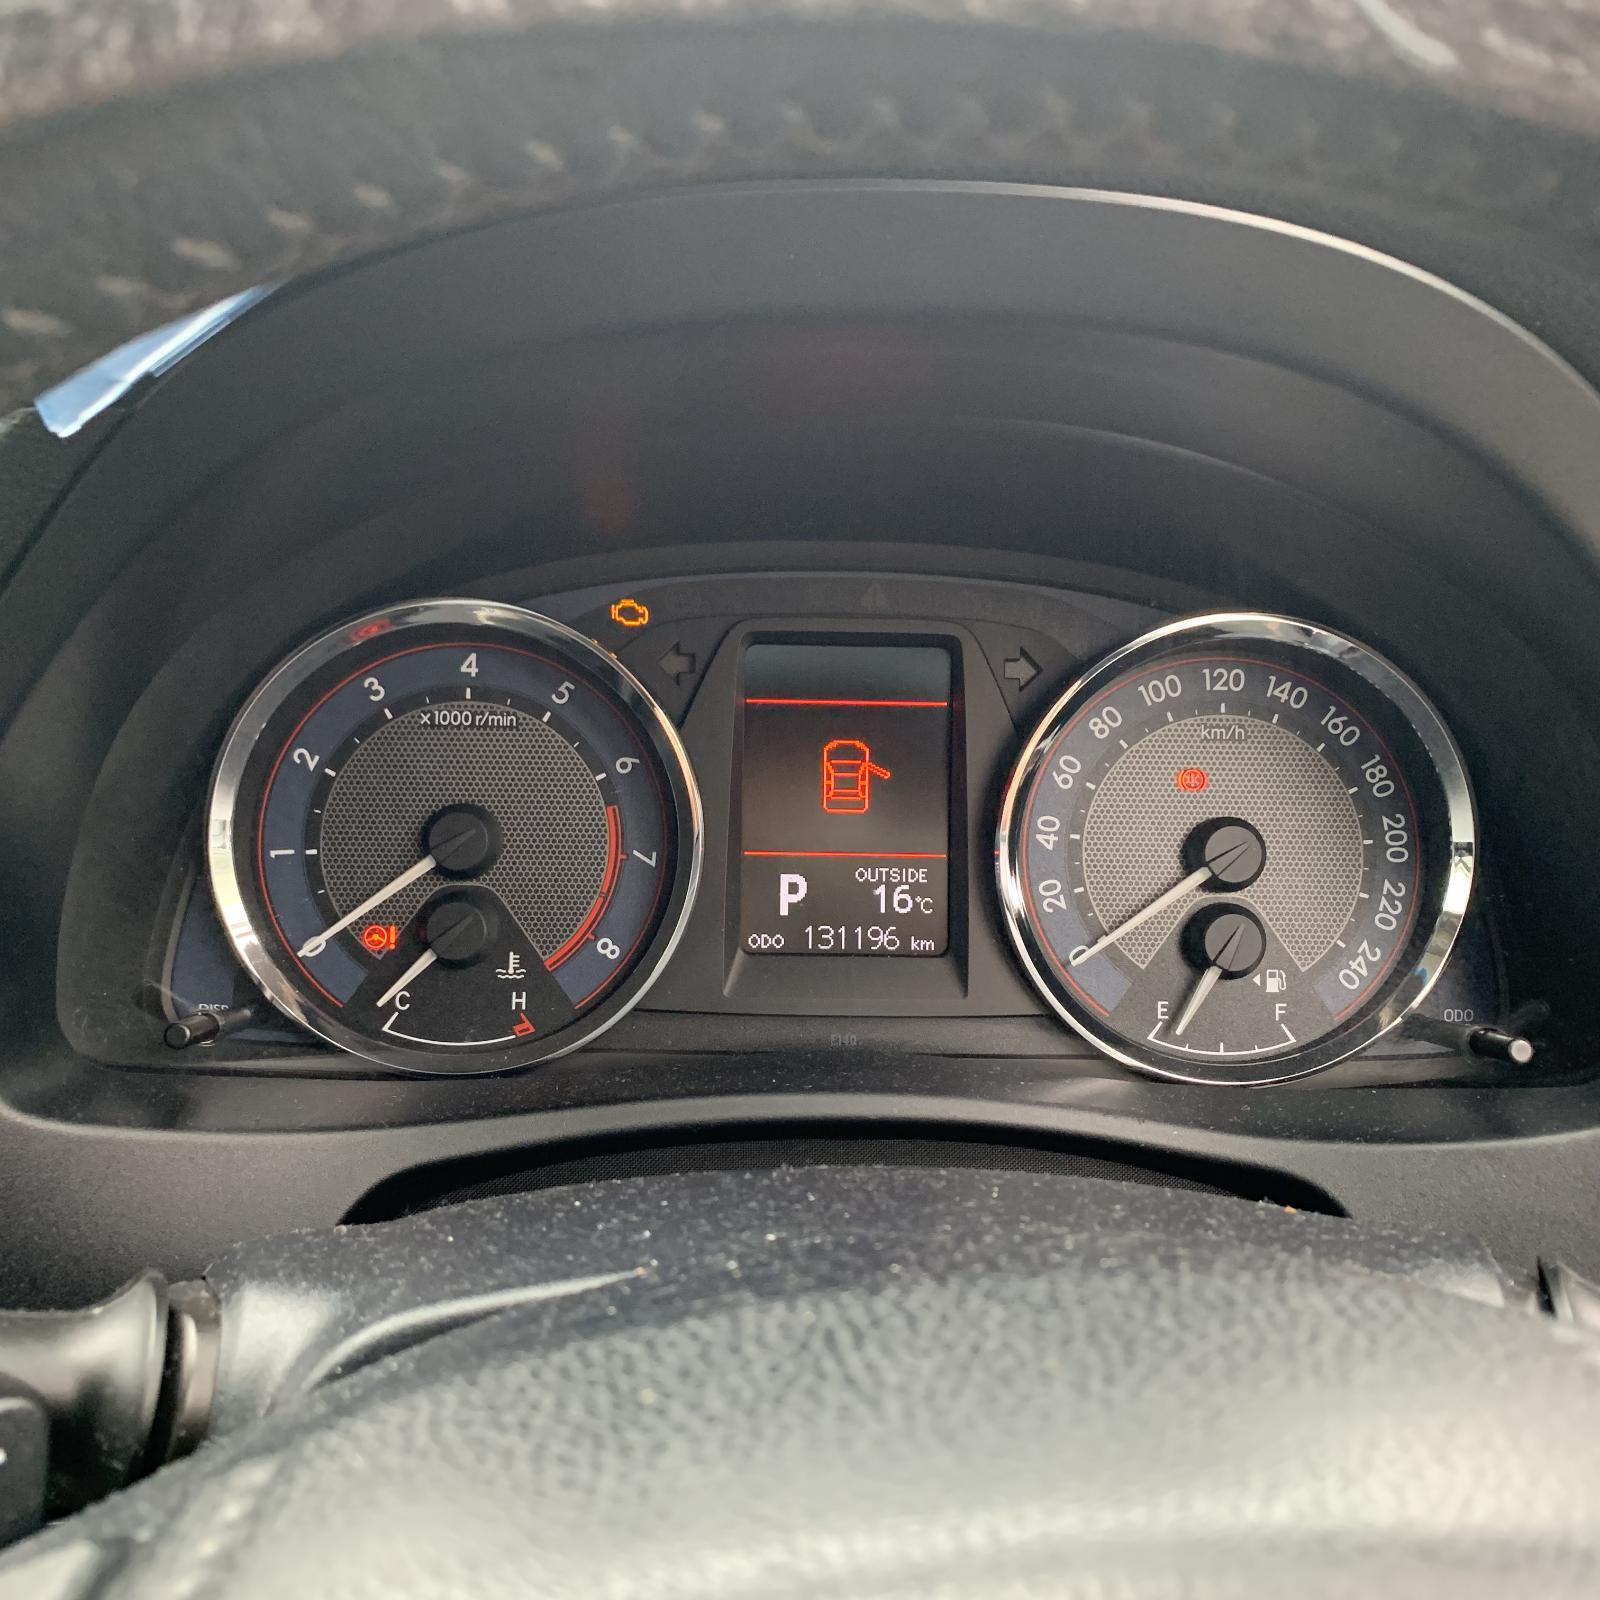 TOYOTA COROLLA, Instrument Cluster, 1.8, 2ZR-FE, AUTO T/M TYPE, LEVIN SX/ZR, ZRE182R, HATCH, 10/12-05/15